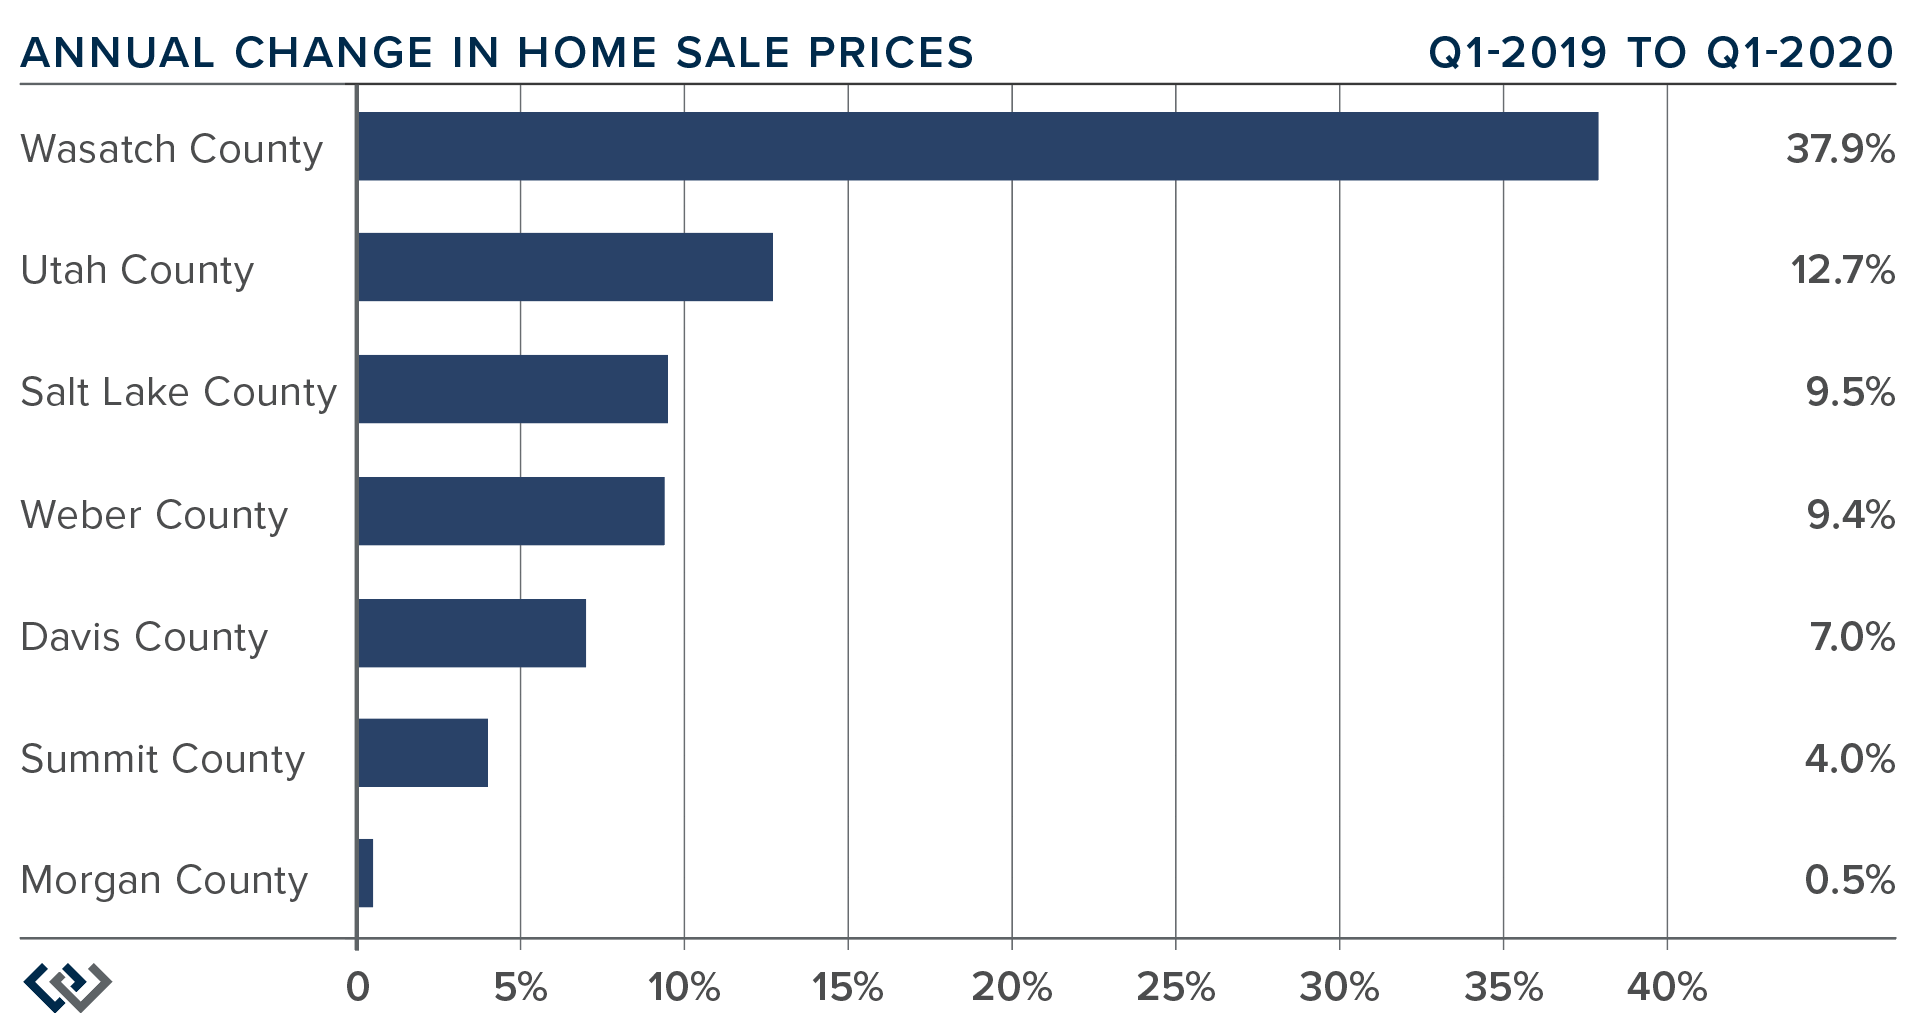 Windermere-Gardner-Report-Utah-Market-Trends-Annual-Change-Home-Sale-Prices-Quarter-1-2020